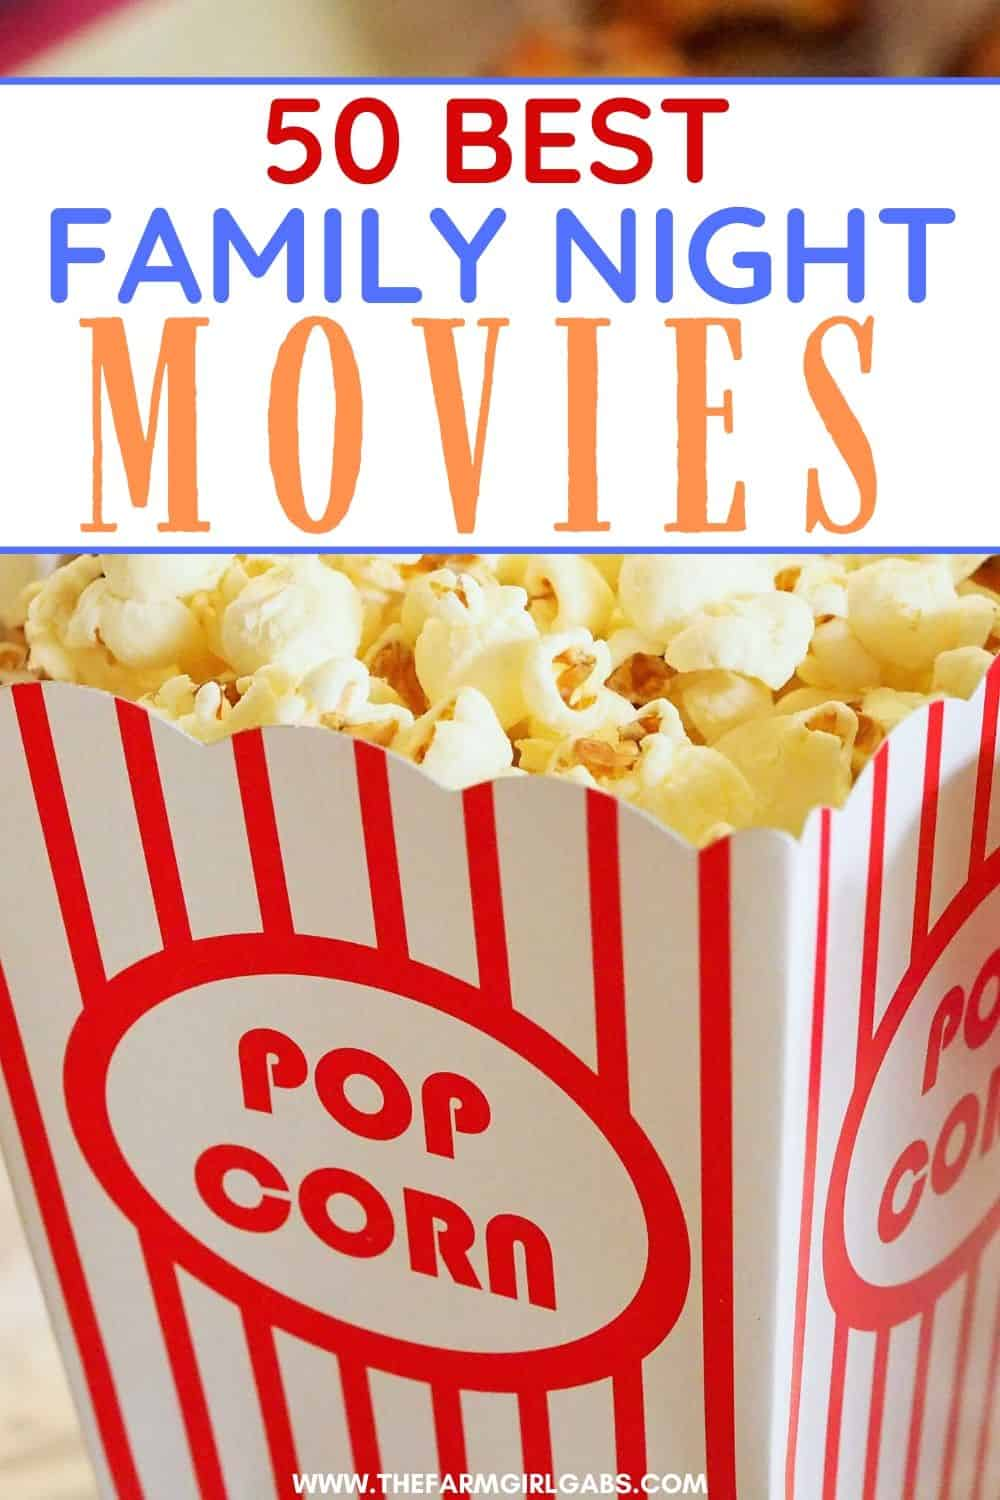 Make it a family movie night! Grab some popcorn and pick one of these 20 Best Family Night Movies to watch as a family. Movie nights are a great family bonding experience!